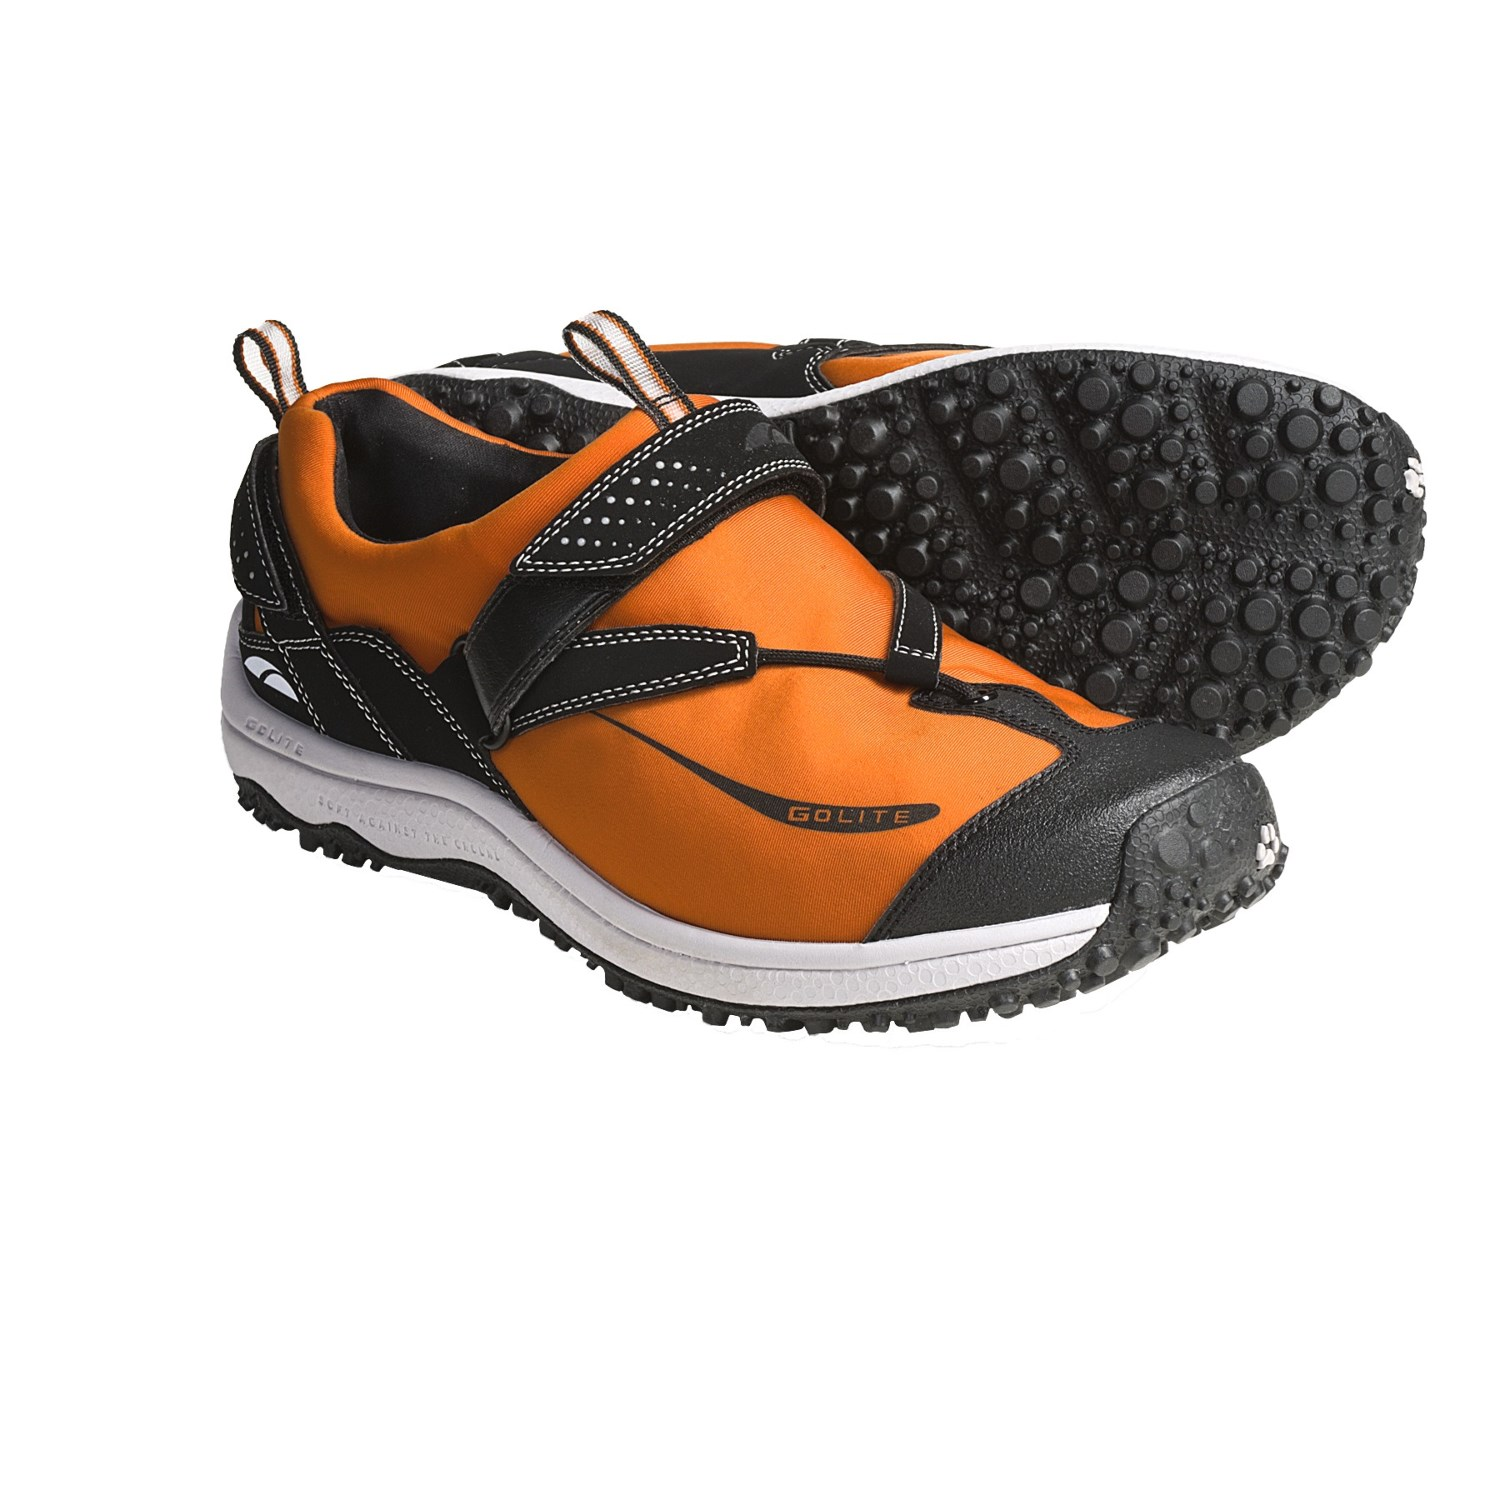 golite tara lite trail running shoes for men in burnt orange7Ep7E4274x 017E15003 - shoes for men